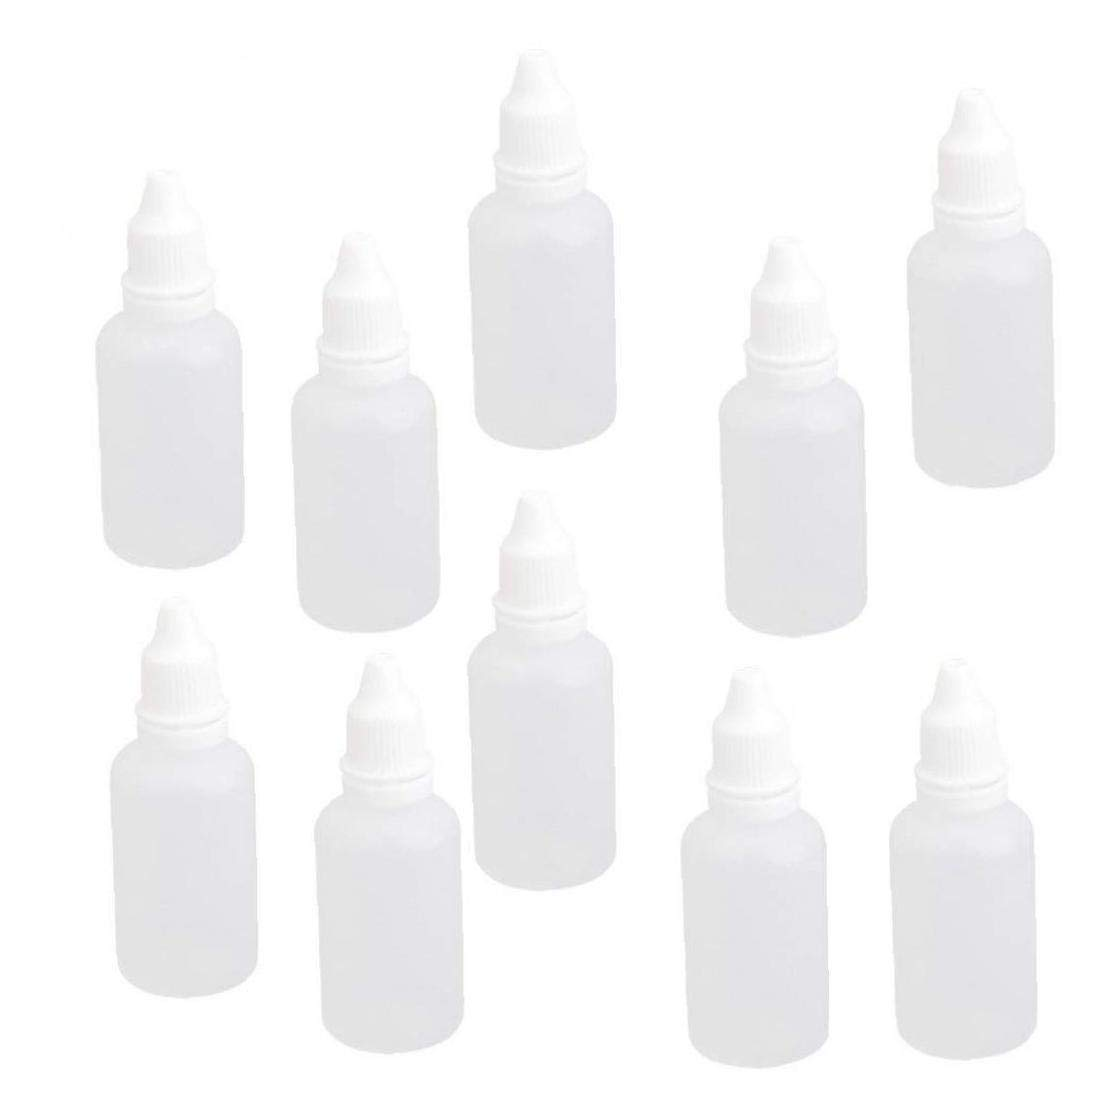 6pcs 30ml Plastic Refillable Empty Dropping Bottles With Screw Cap Dropper Vials Sample Packing Storage Holder Container White